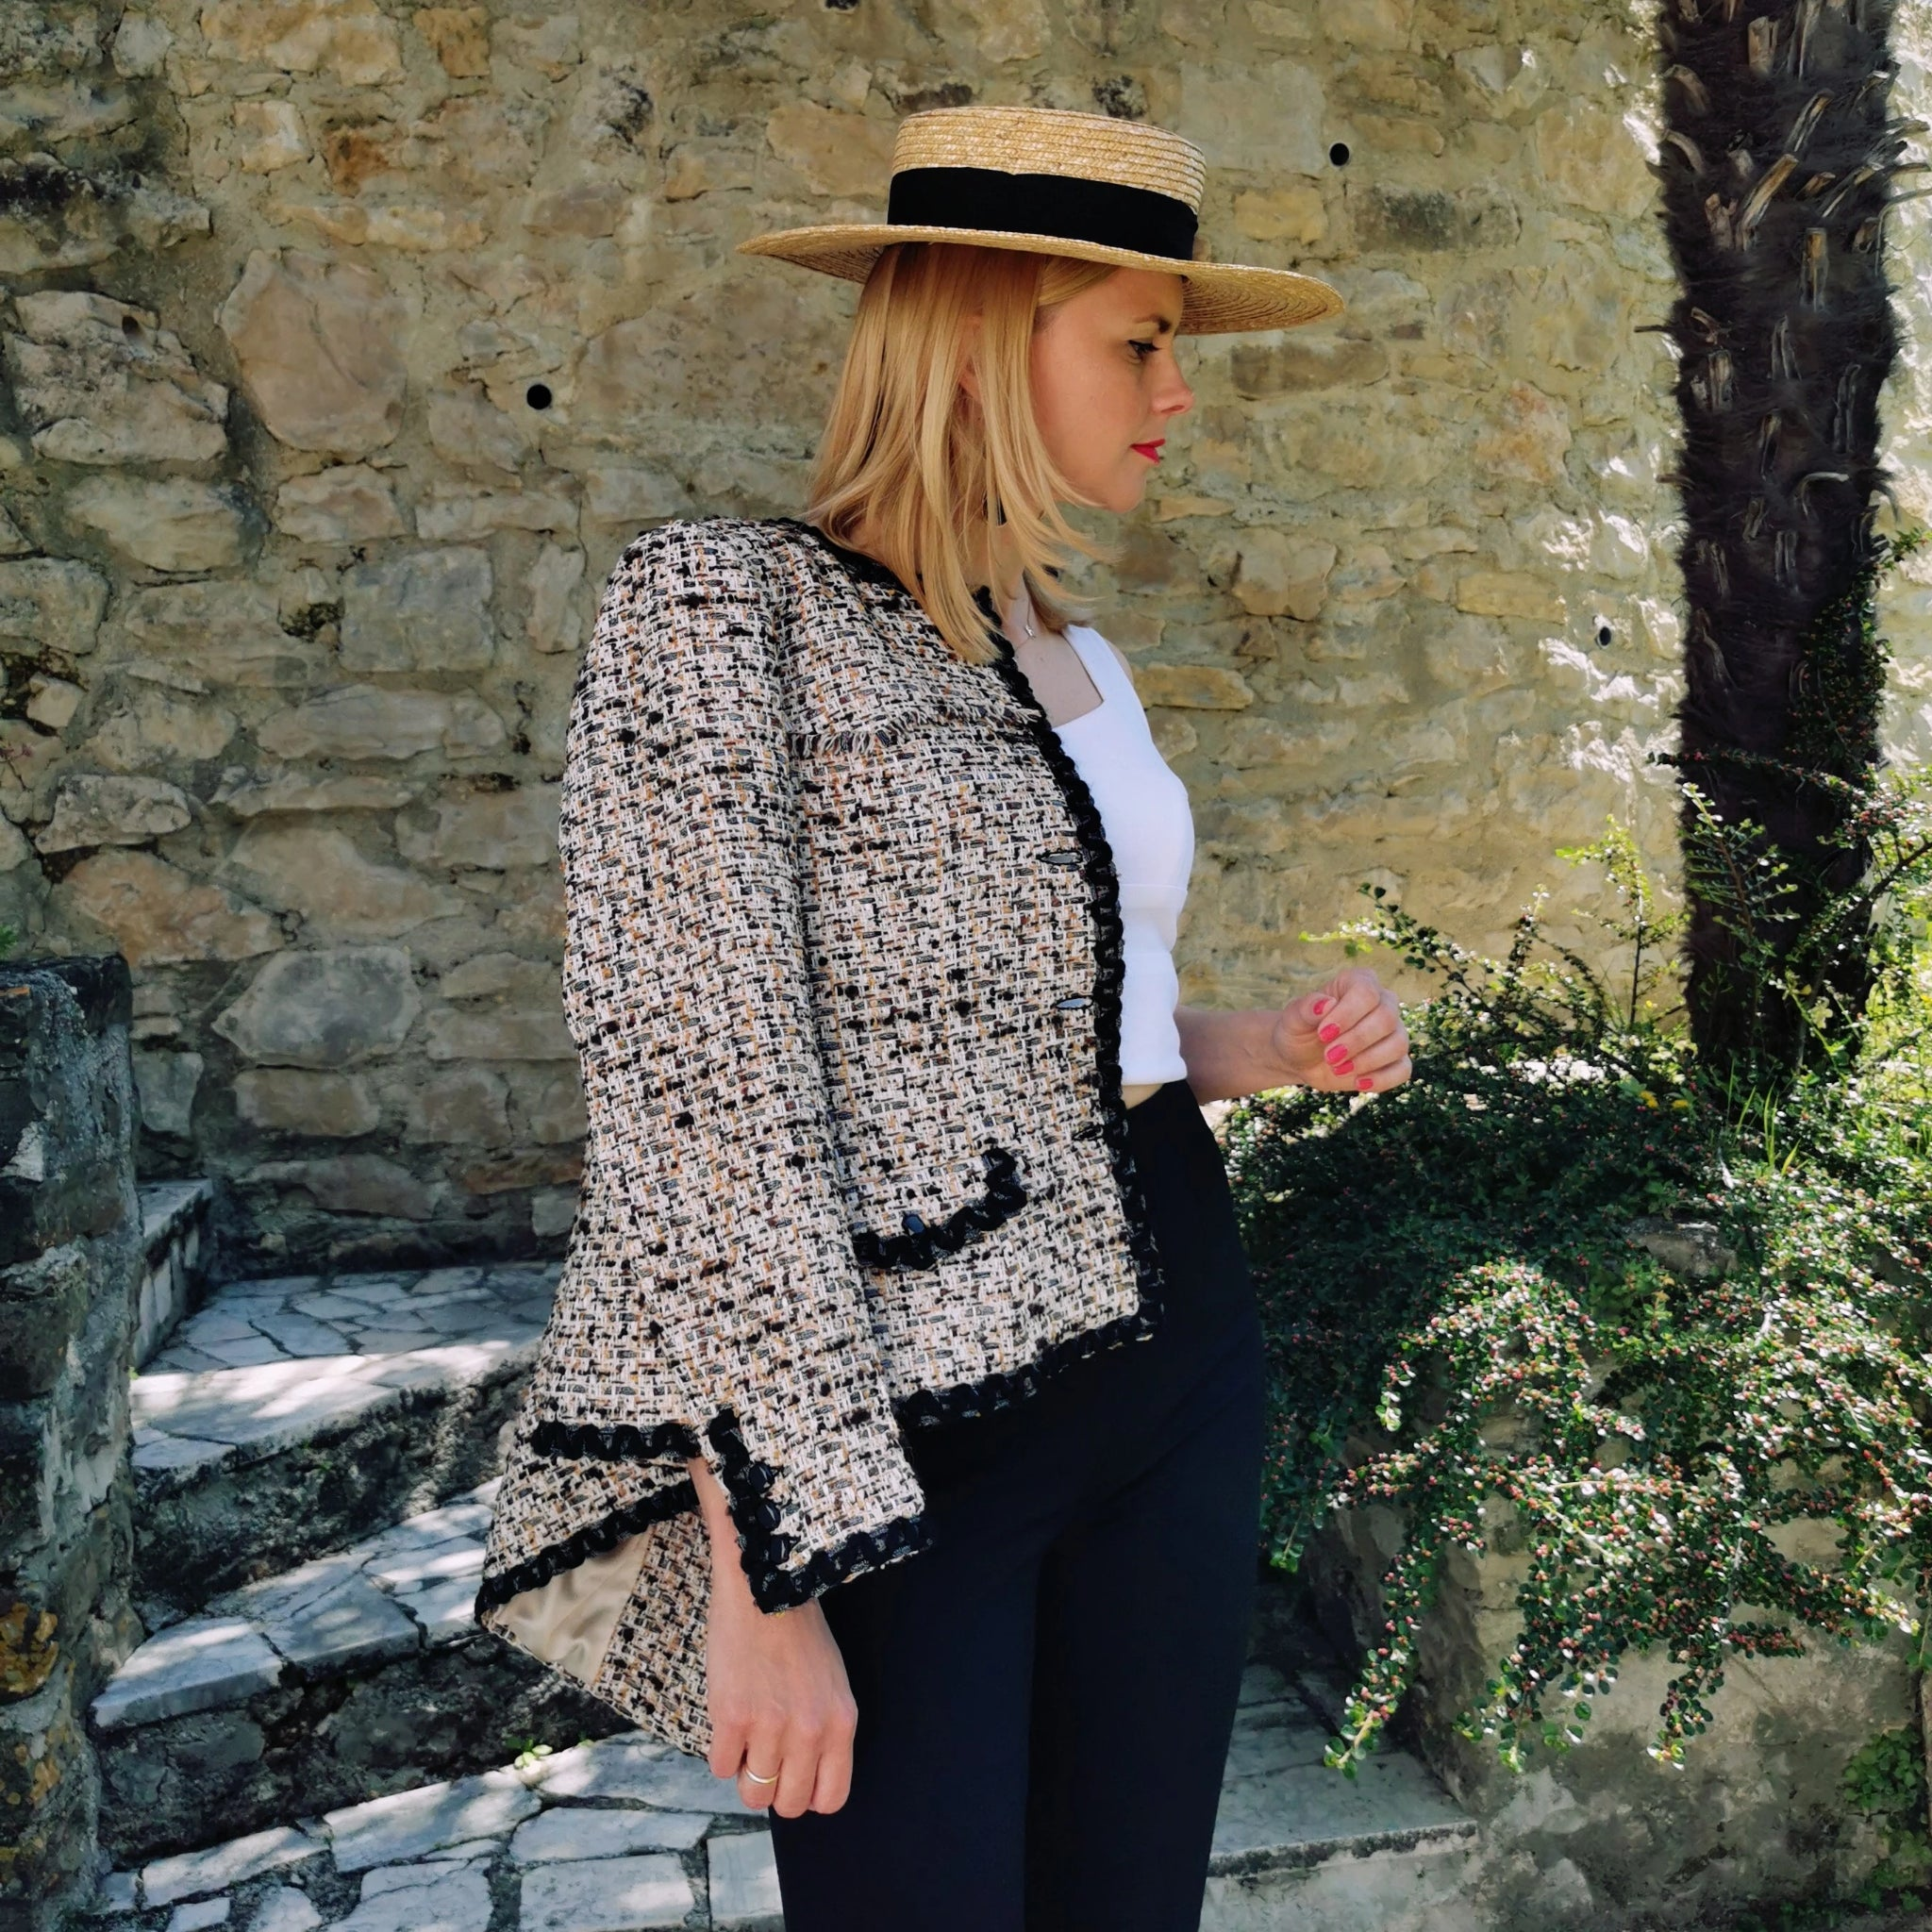 'Mira' beige and black buttoned tweed jacket